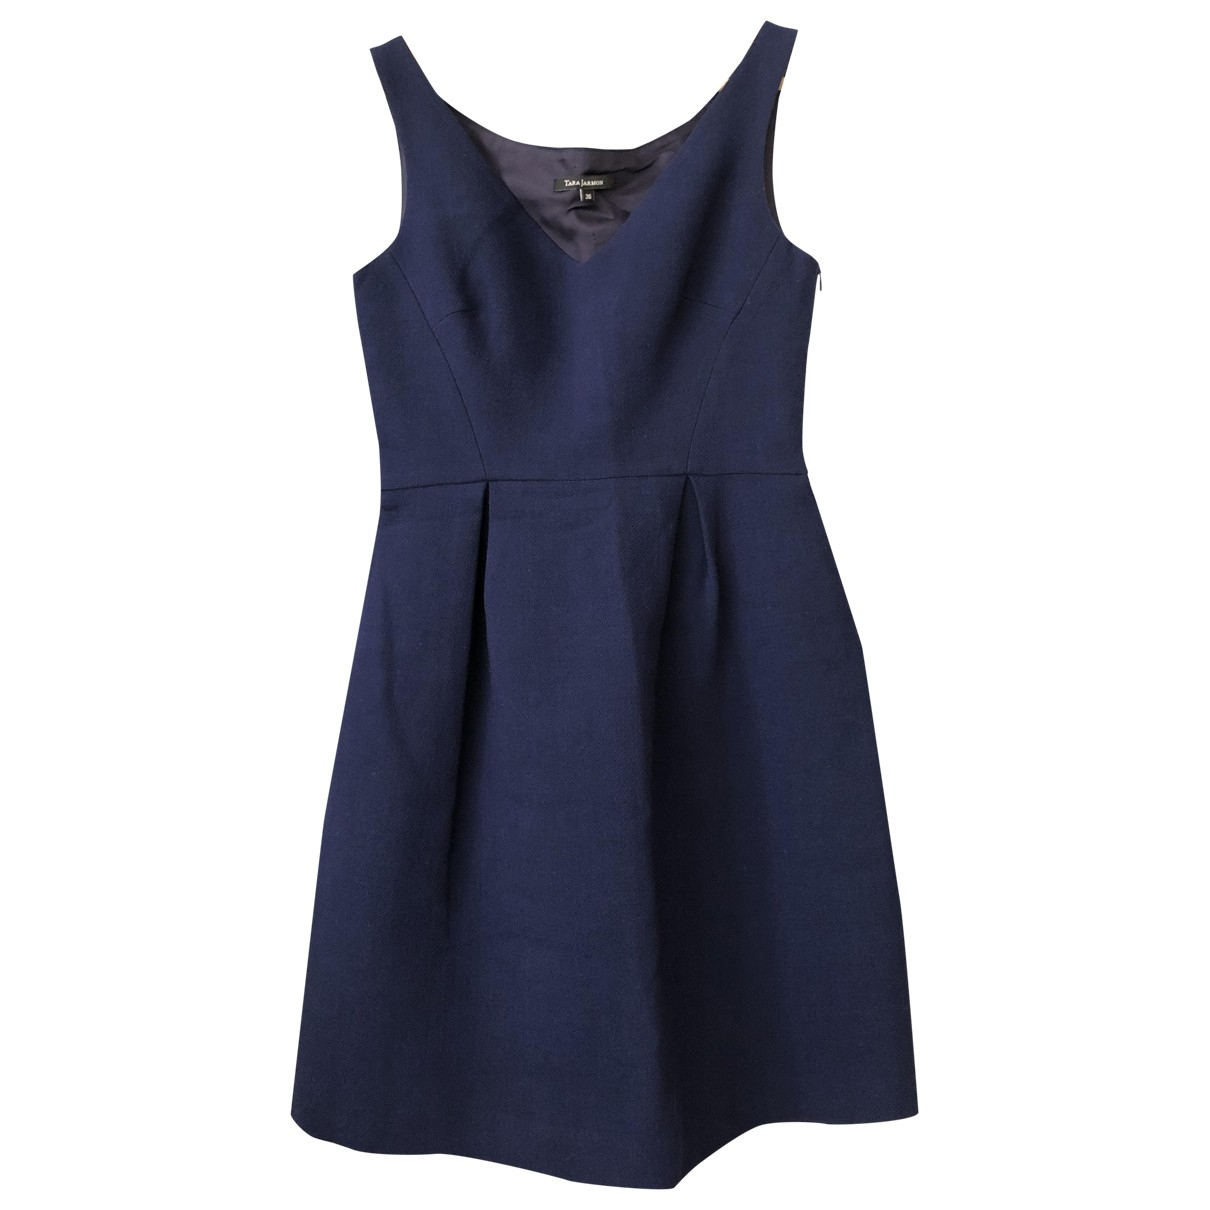 Tara Jarmon \N Blue Wool dress for Women 36 FR